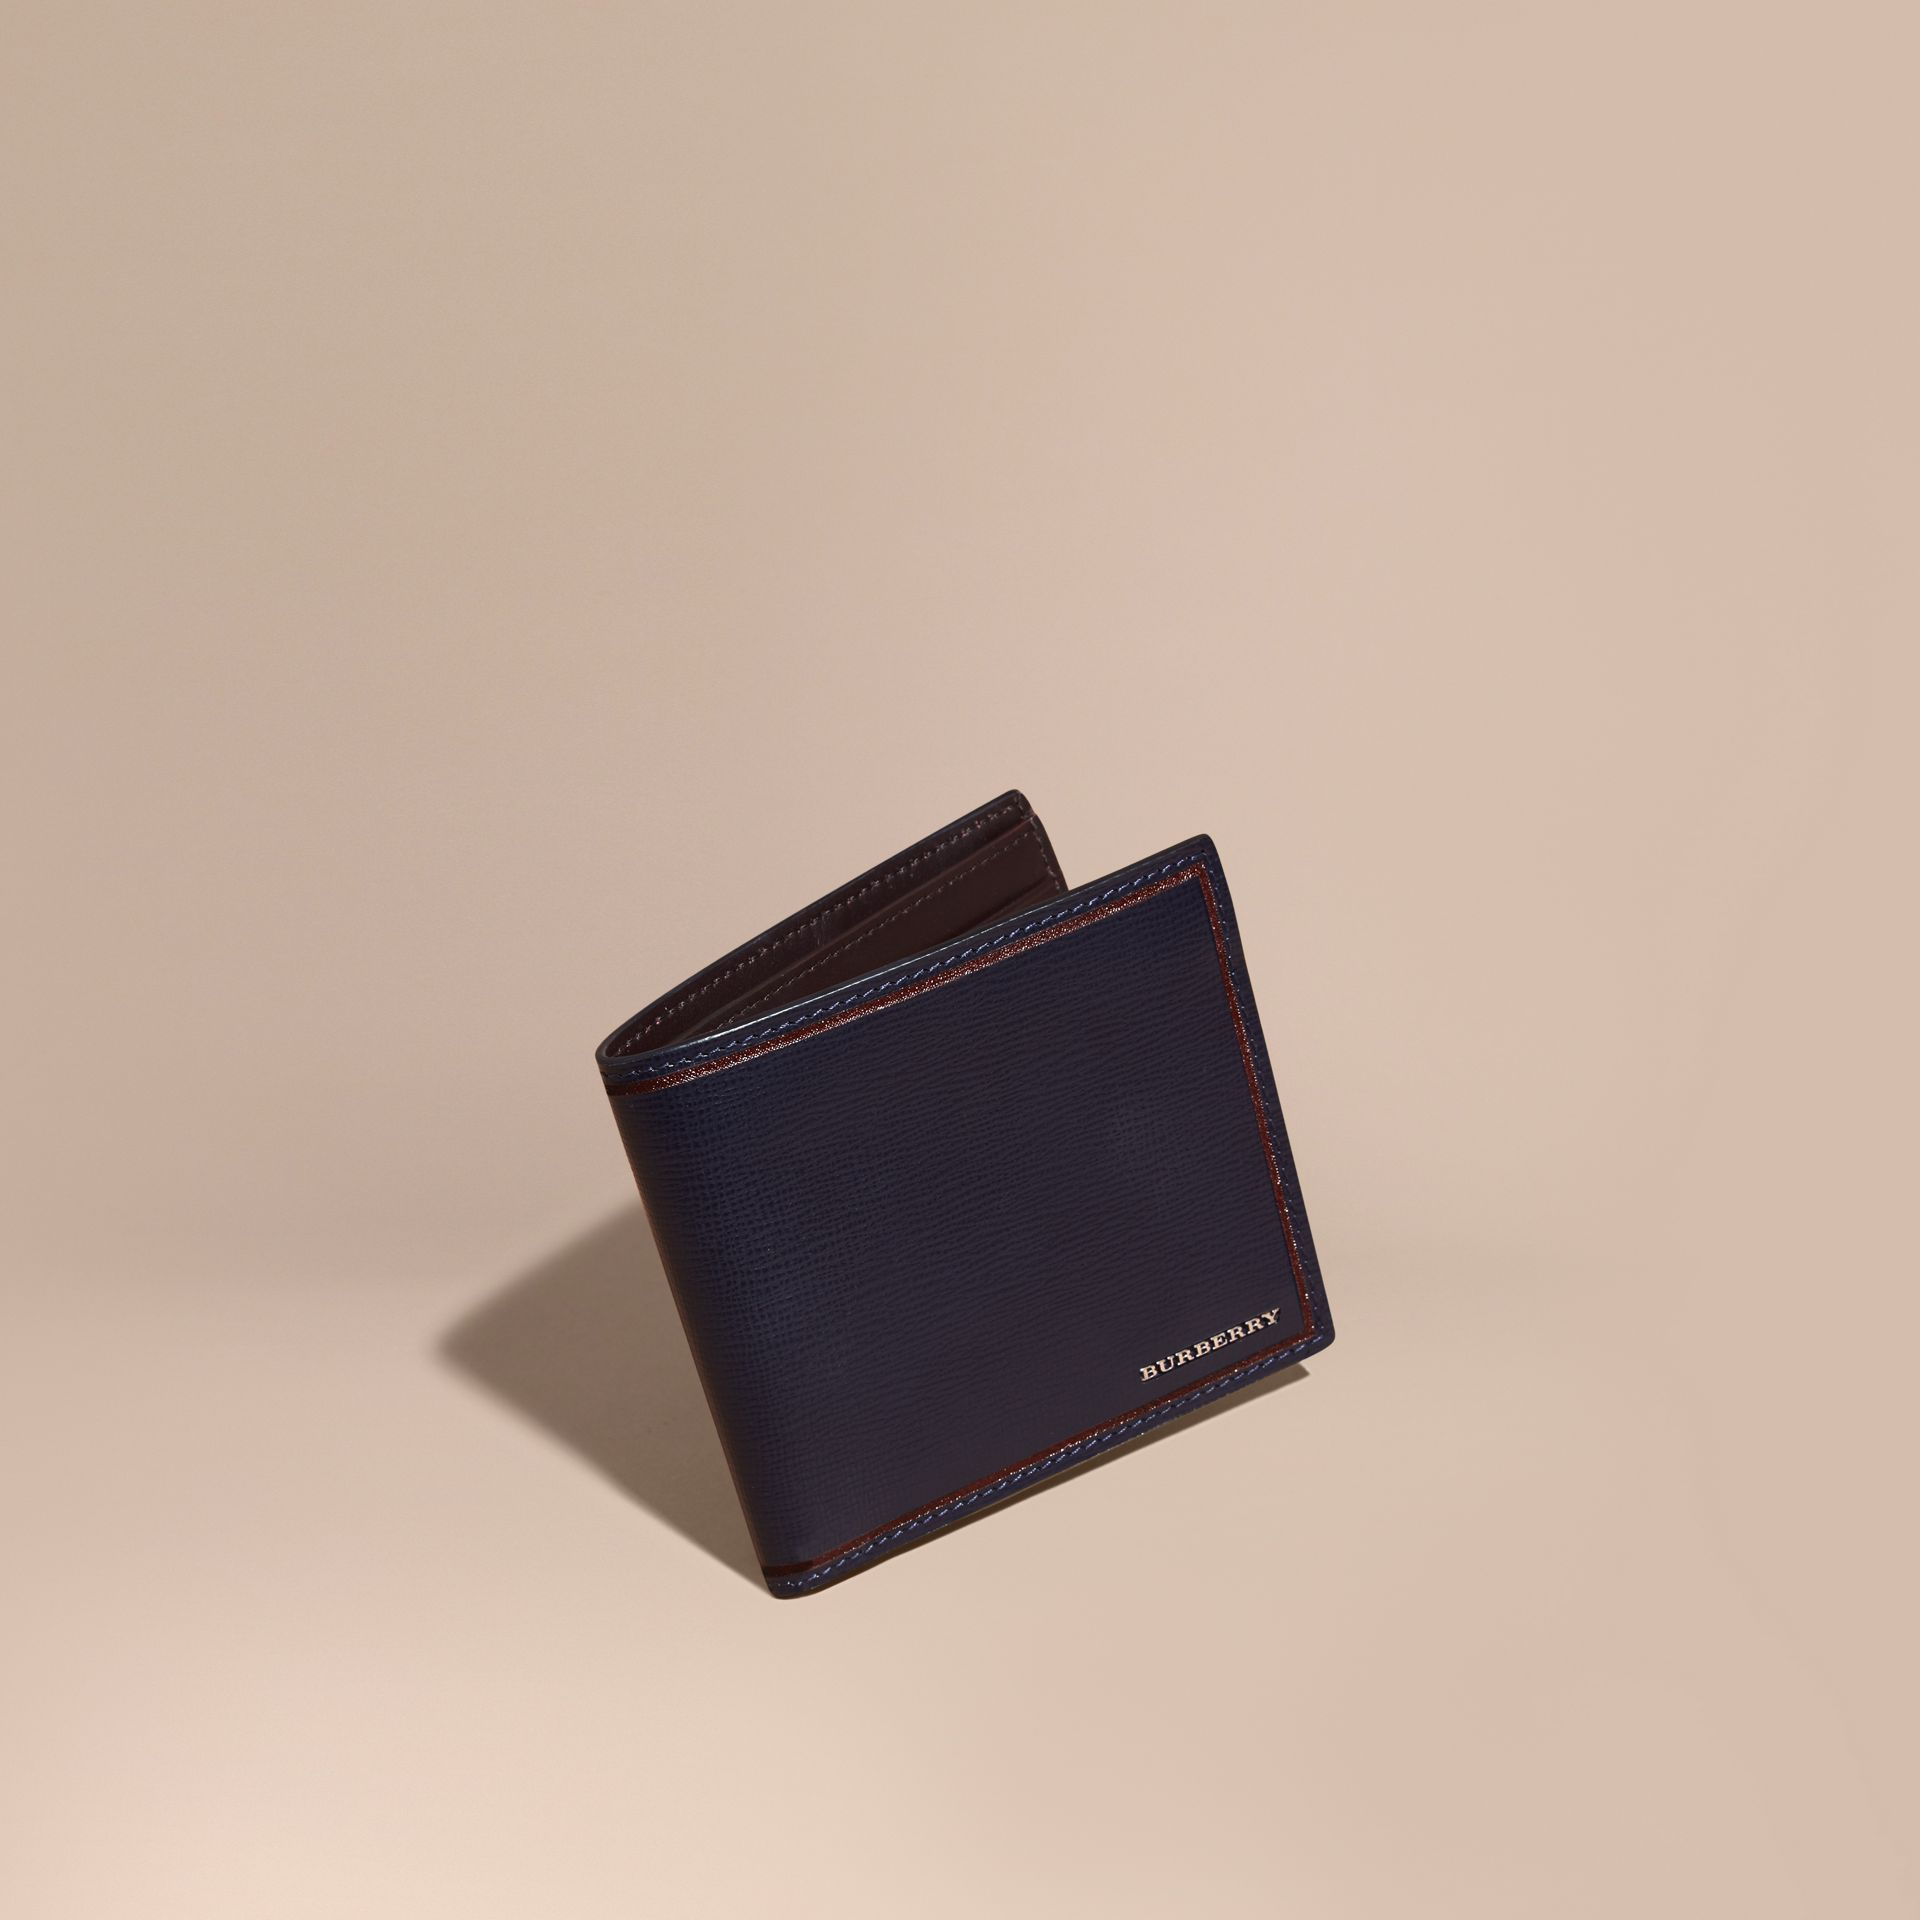 Dark navy Border Detail London Leather Folding Wallet Dark Navy - gallery image 1